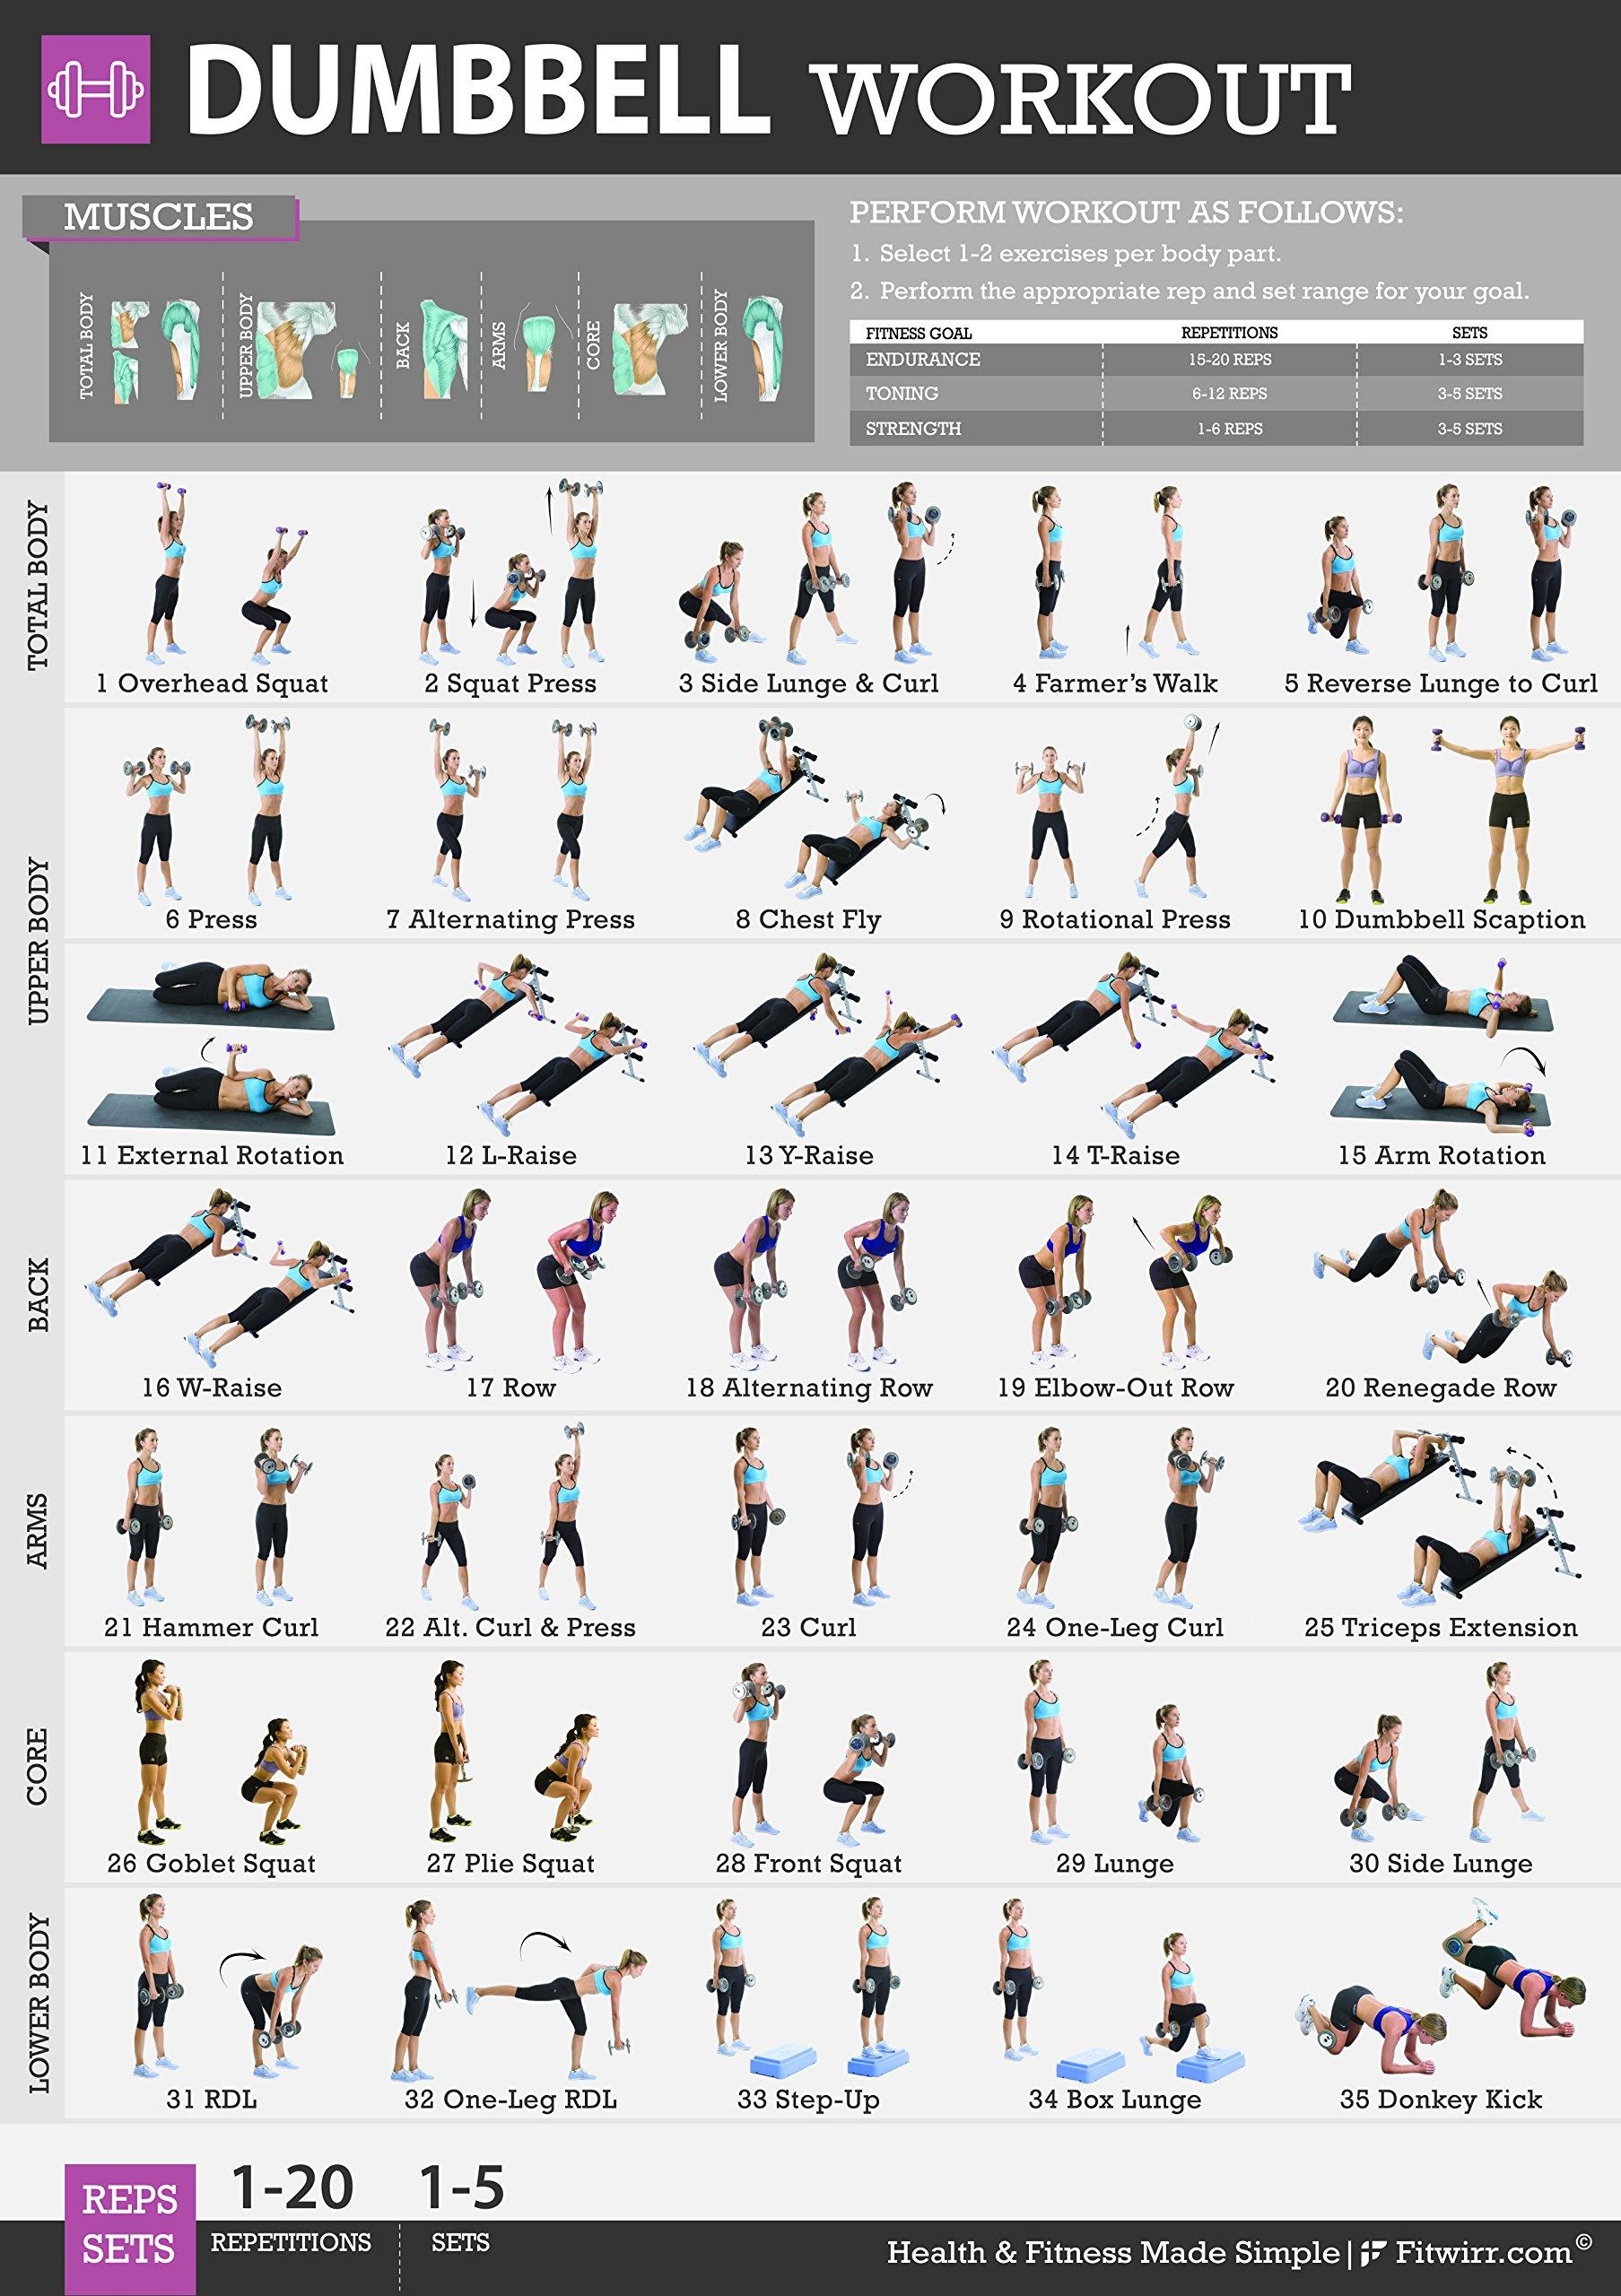 Plenty of exercises to switch up your dumbbell workouts.